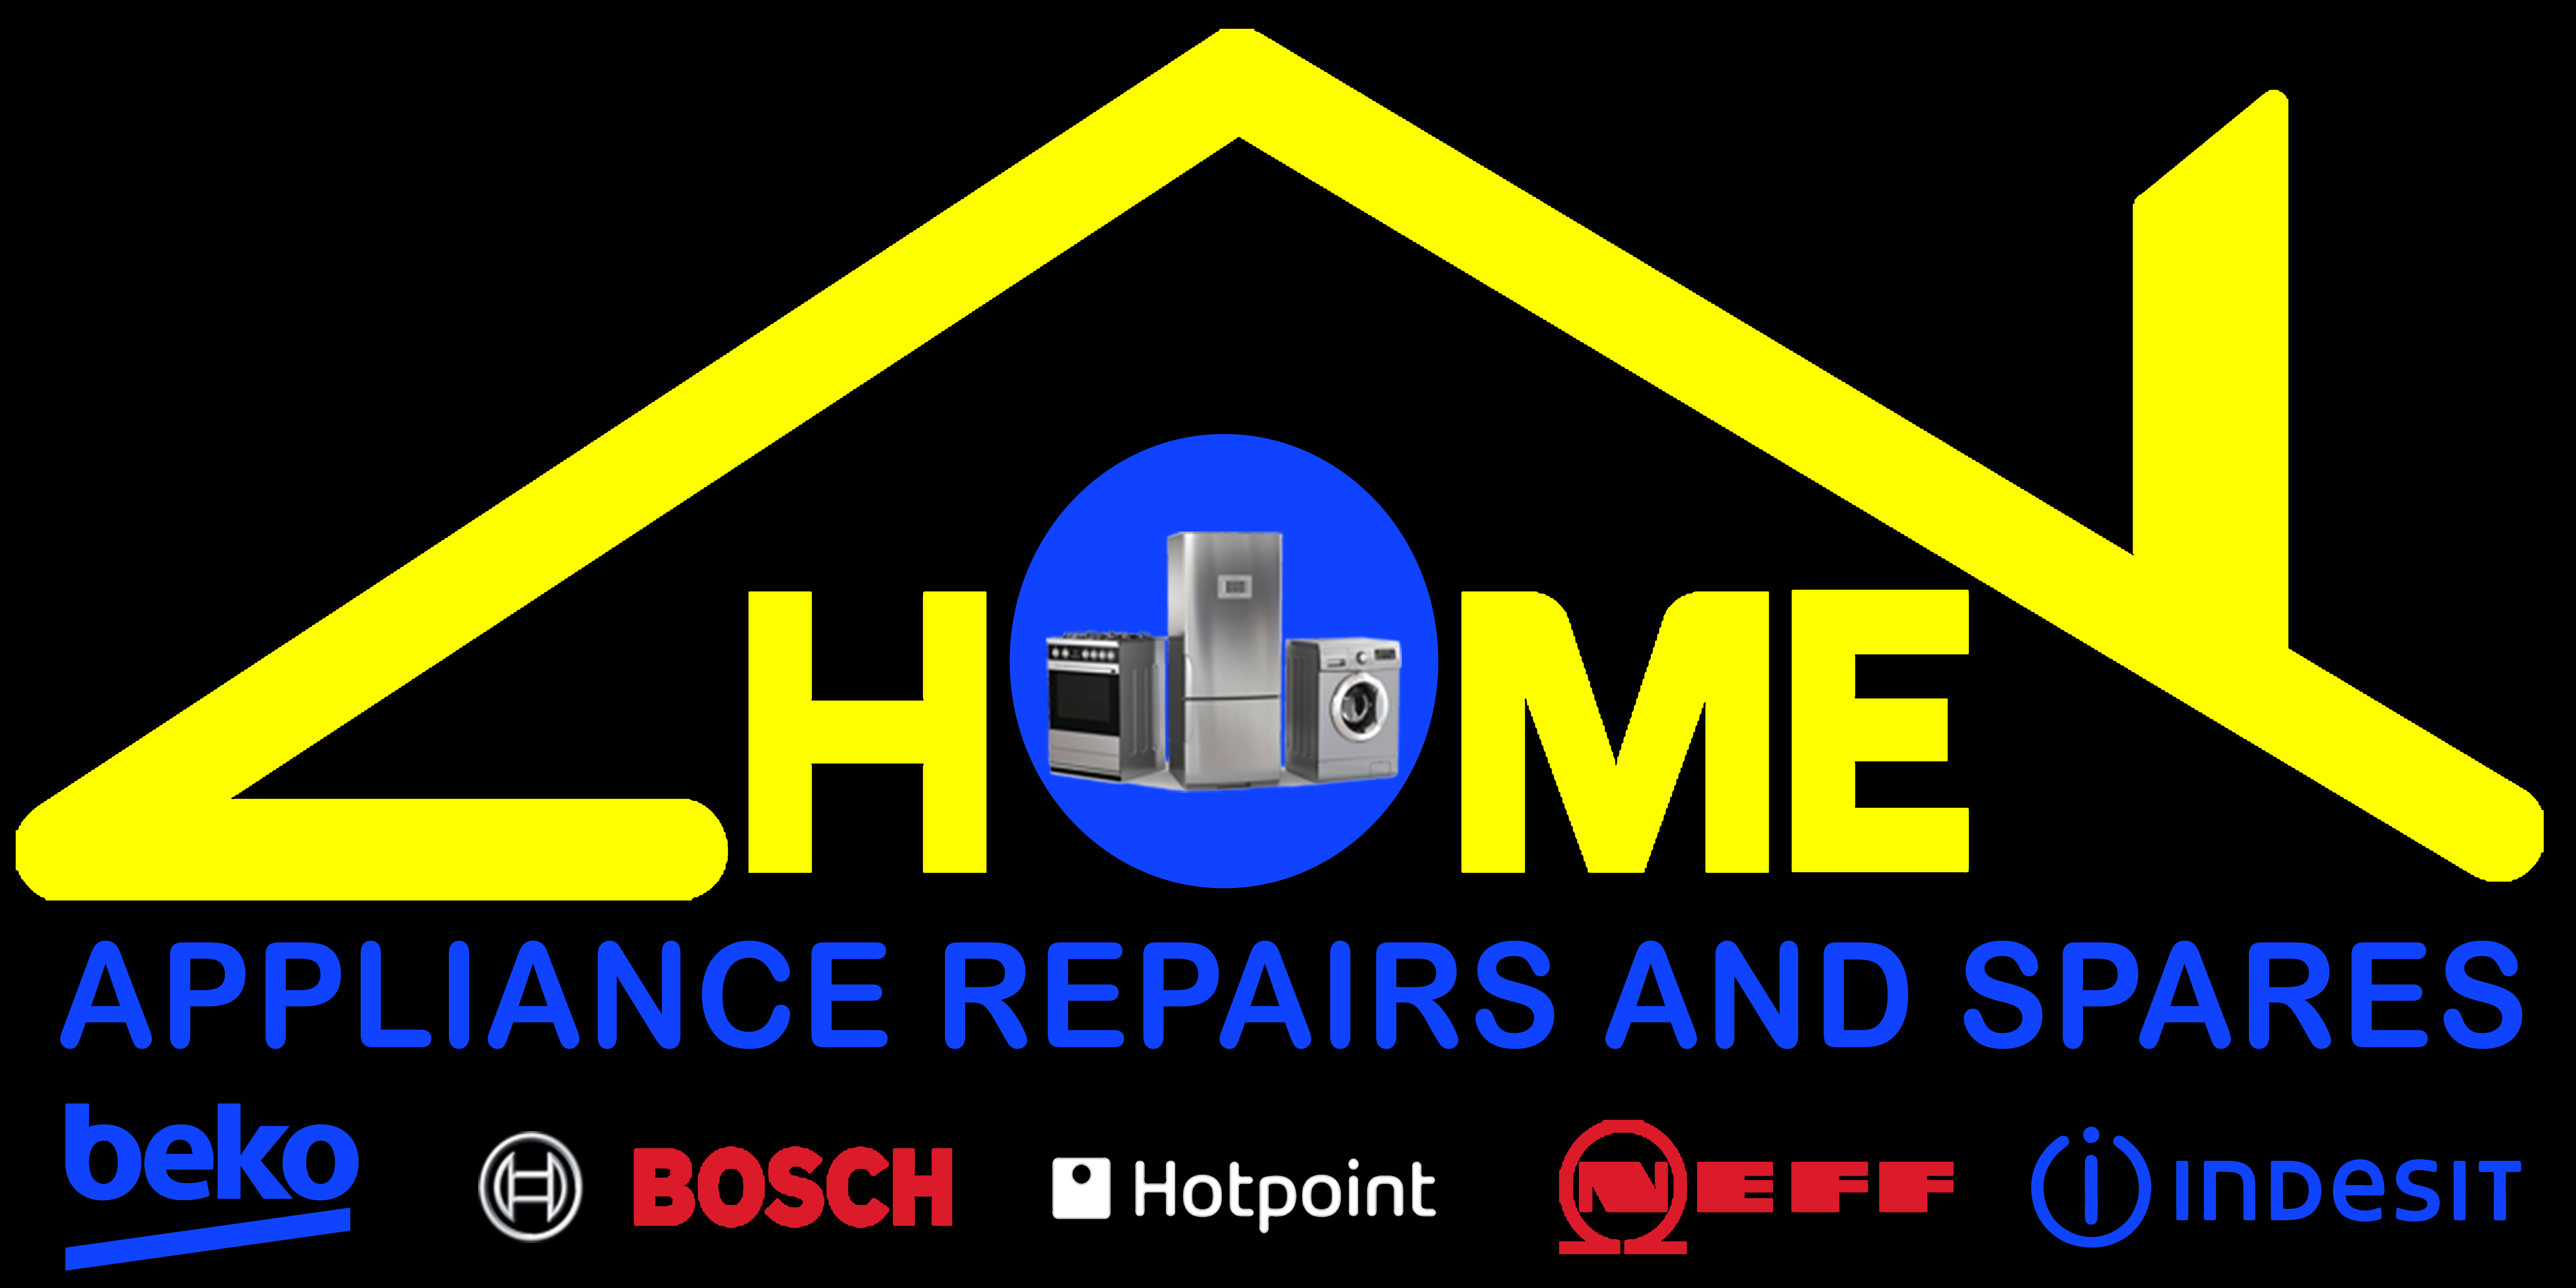 Kitchen Appliances Repairs And Spares